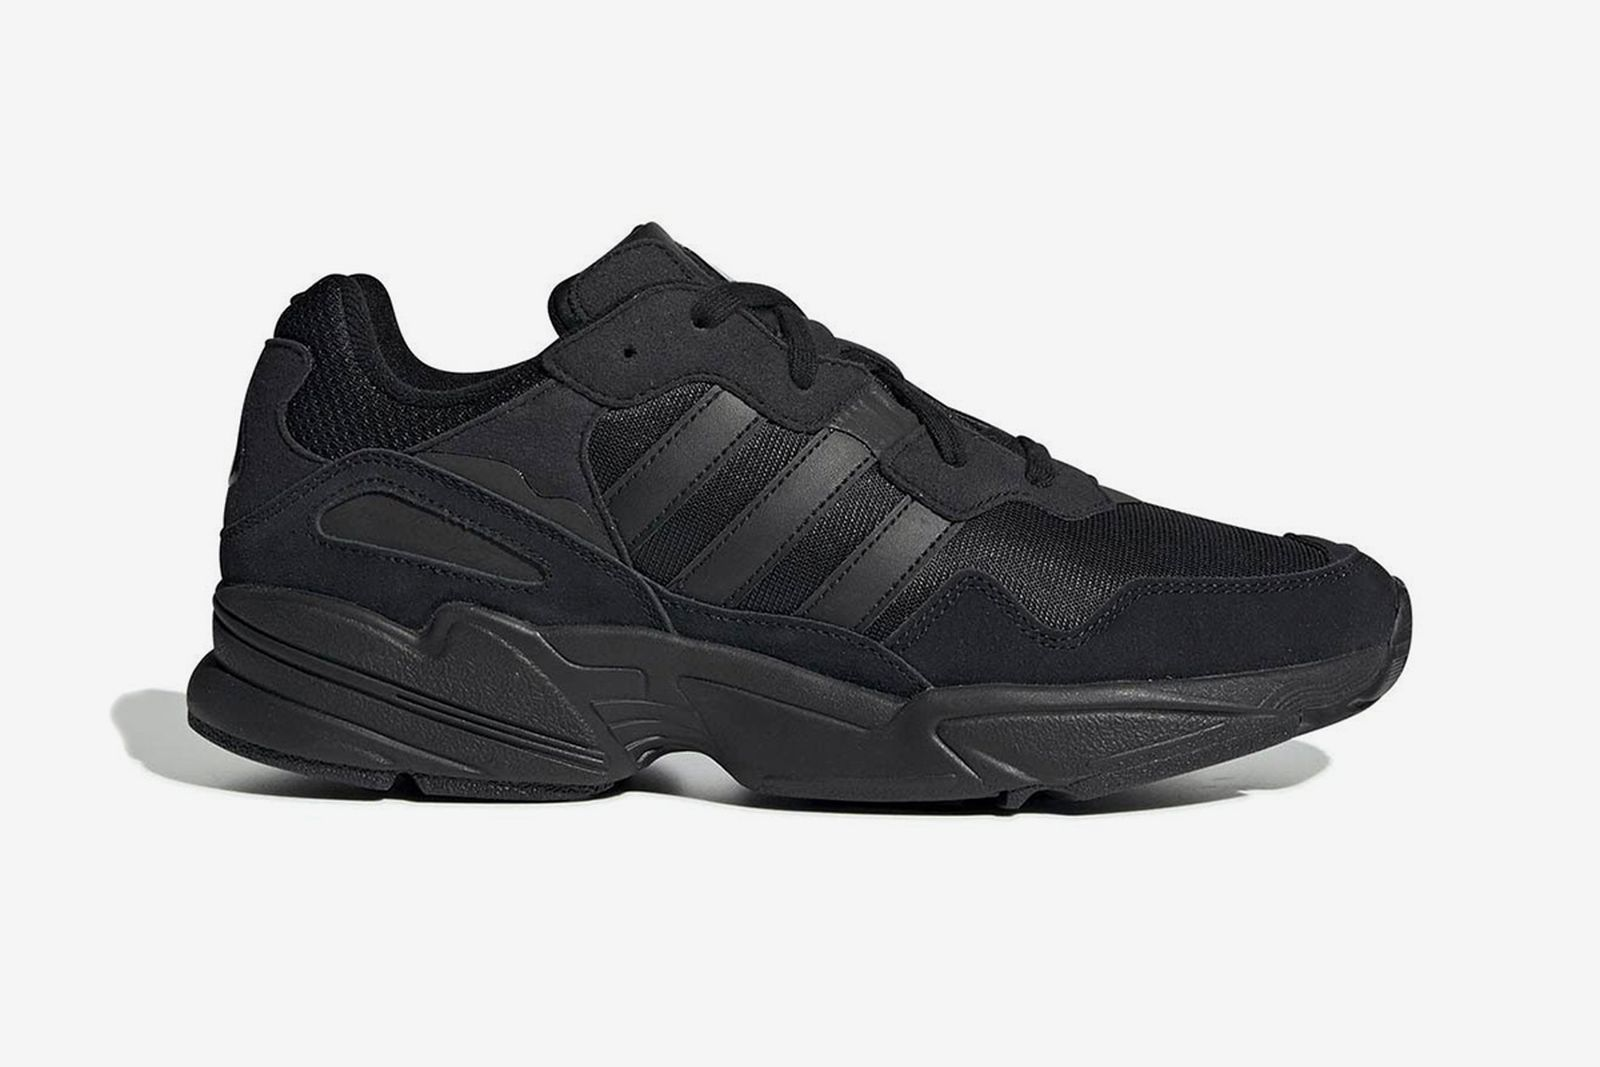 adidas yung 96 triple black release date price